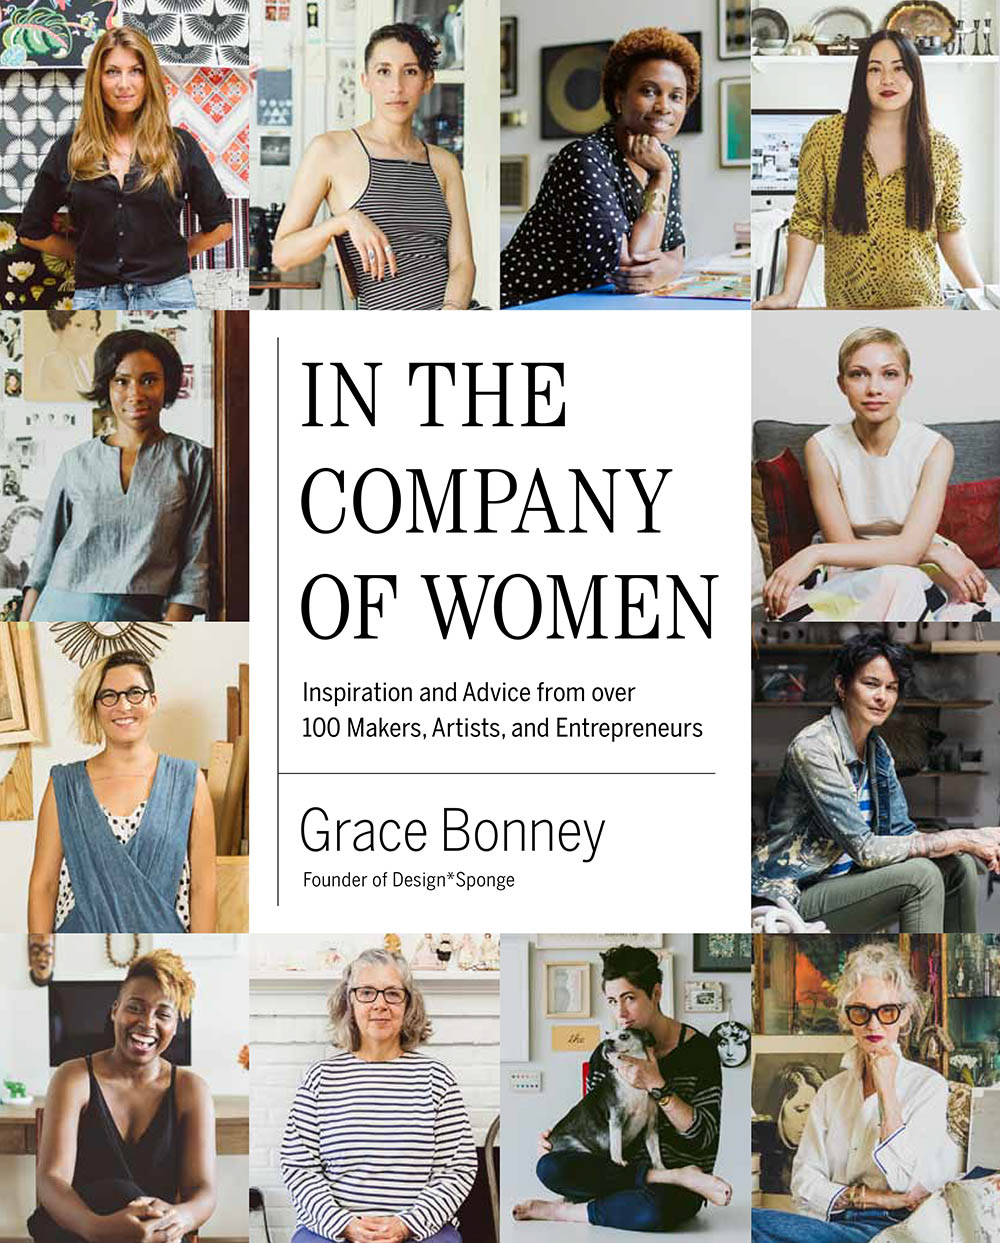 Inspiring Career Books For Young Women - In The Company Of Women by Grace Bonney